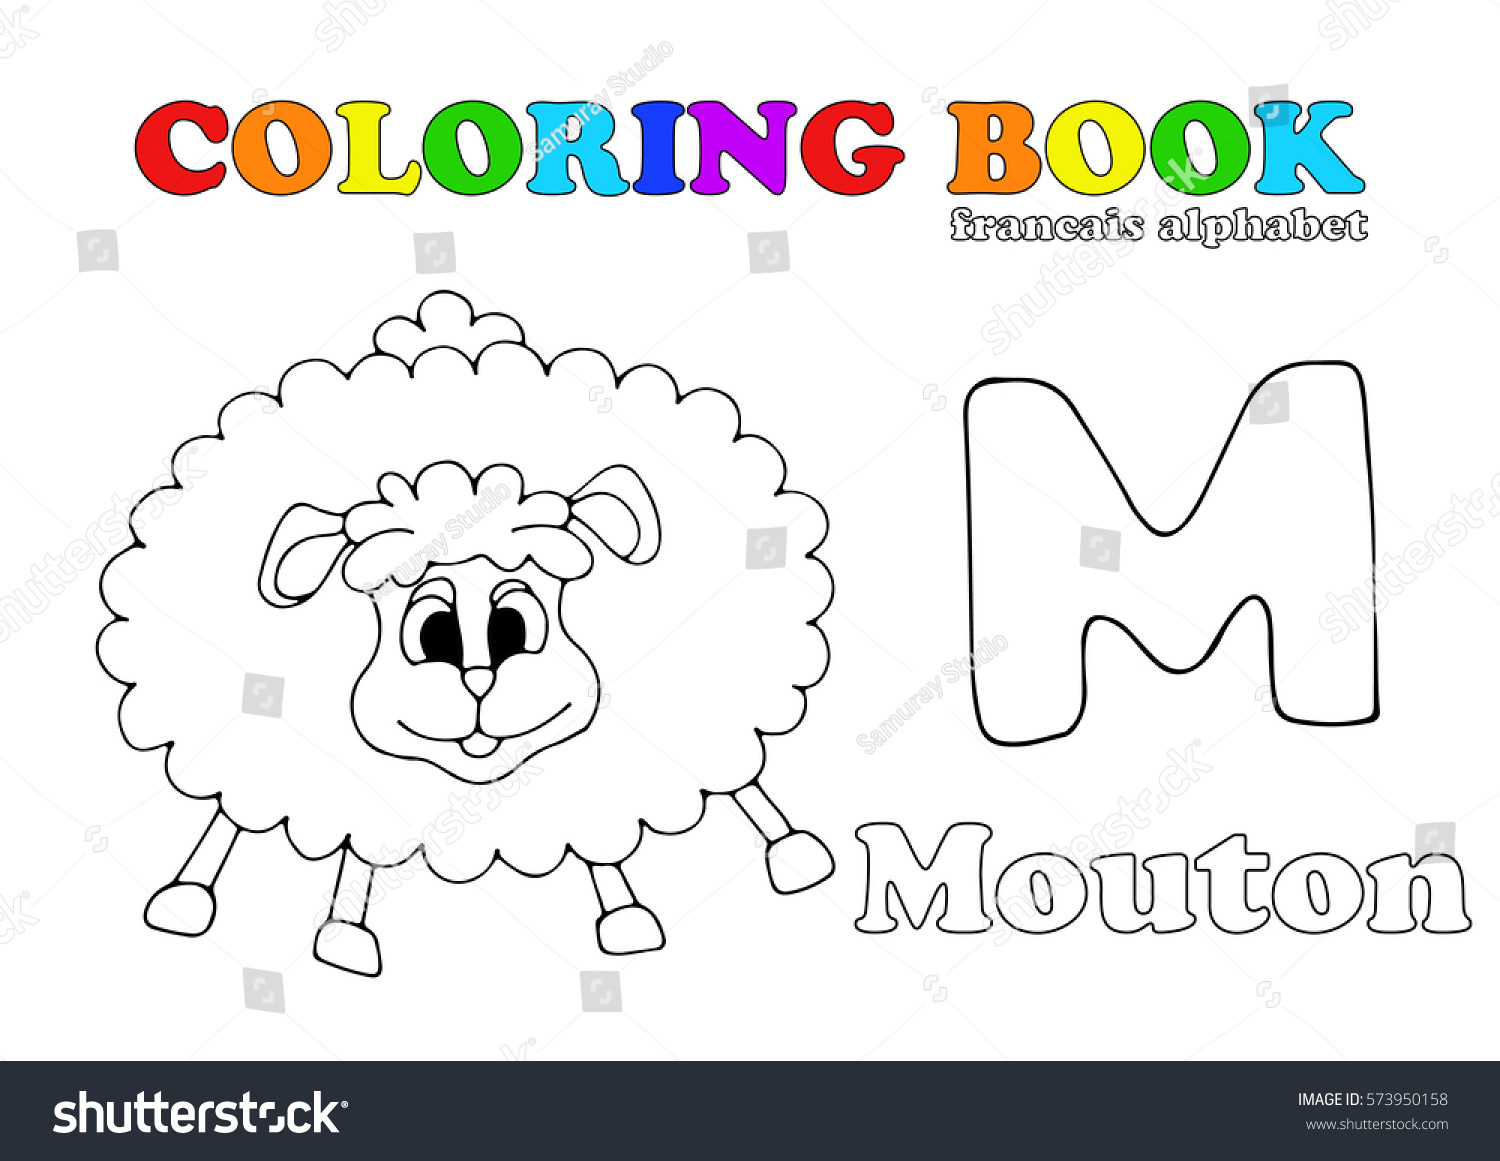 Coloring Book Page Cartoon Illustration Funny Stock Vector (Royalty ...